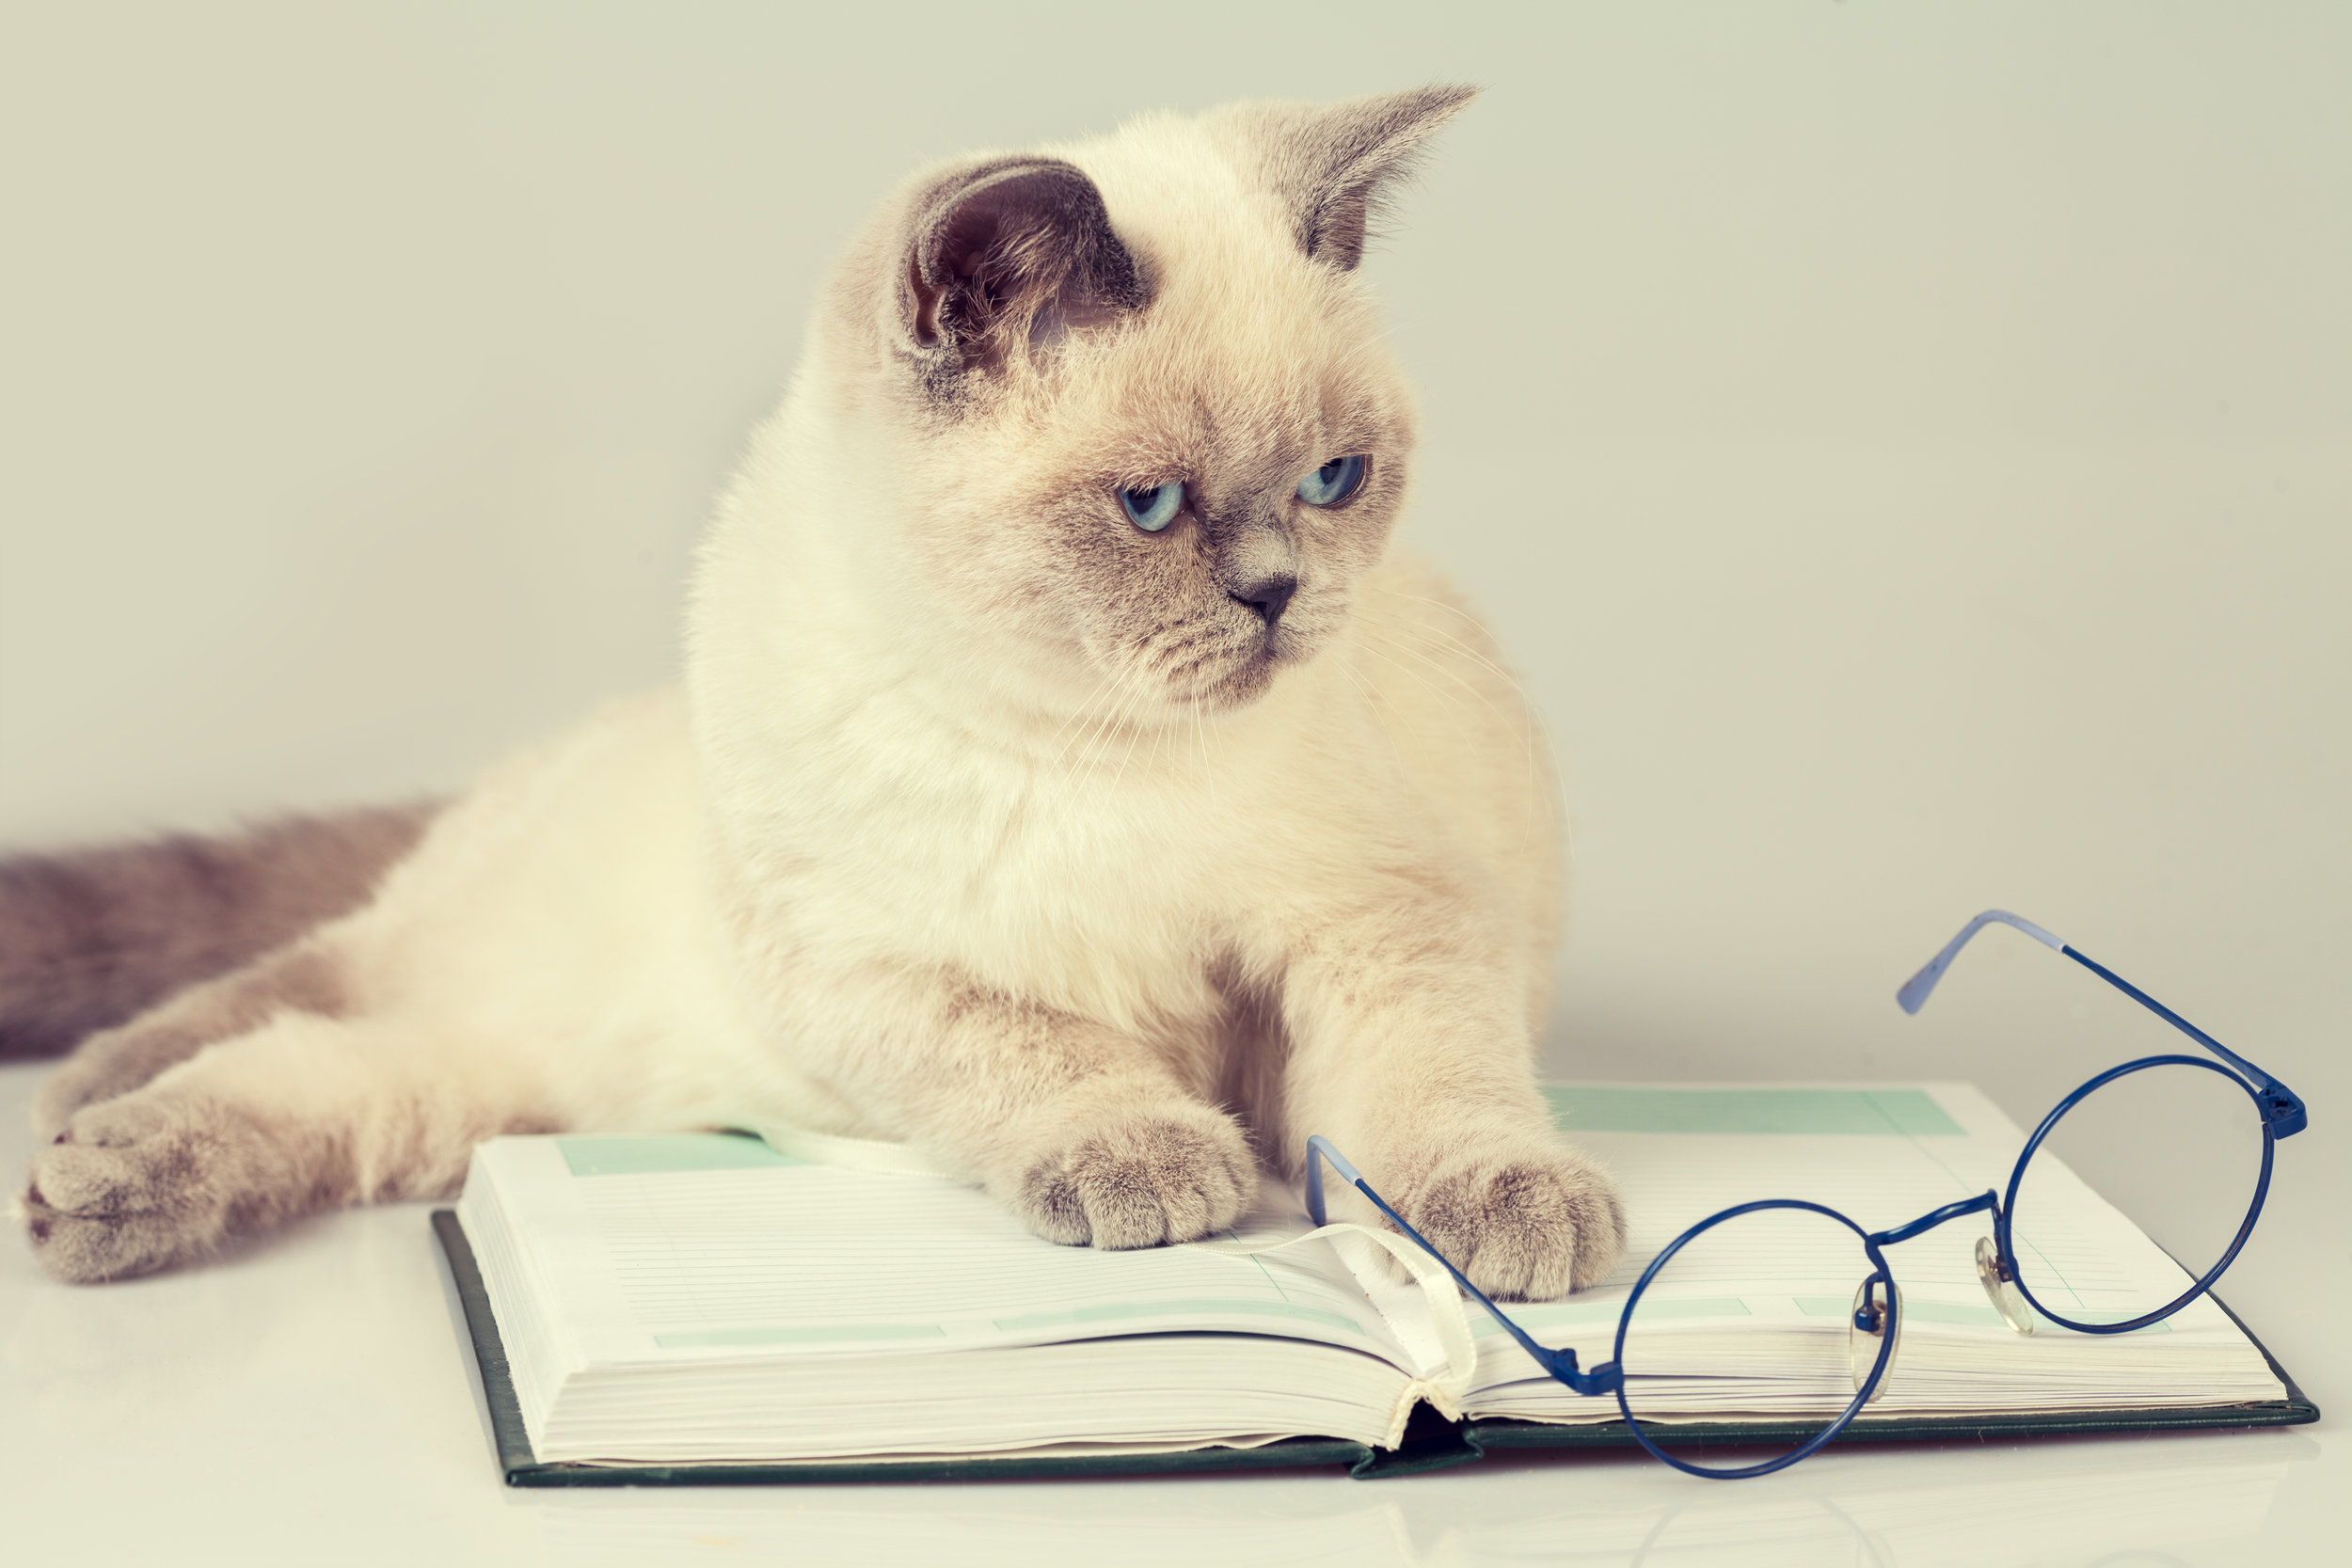 Even your cat has books.